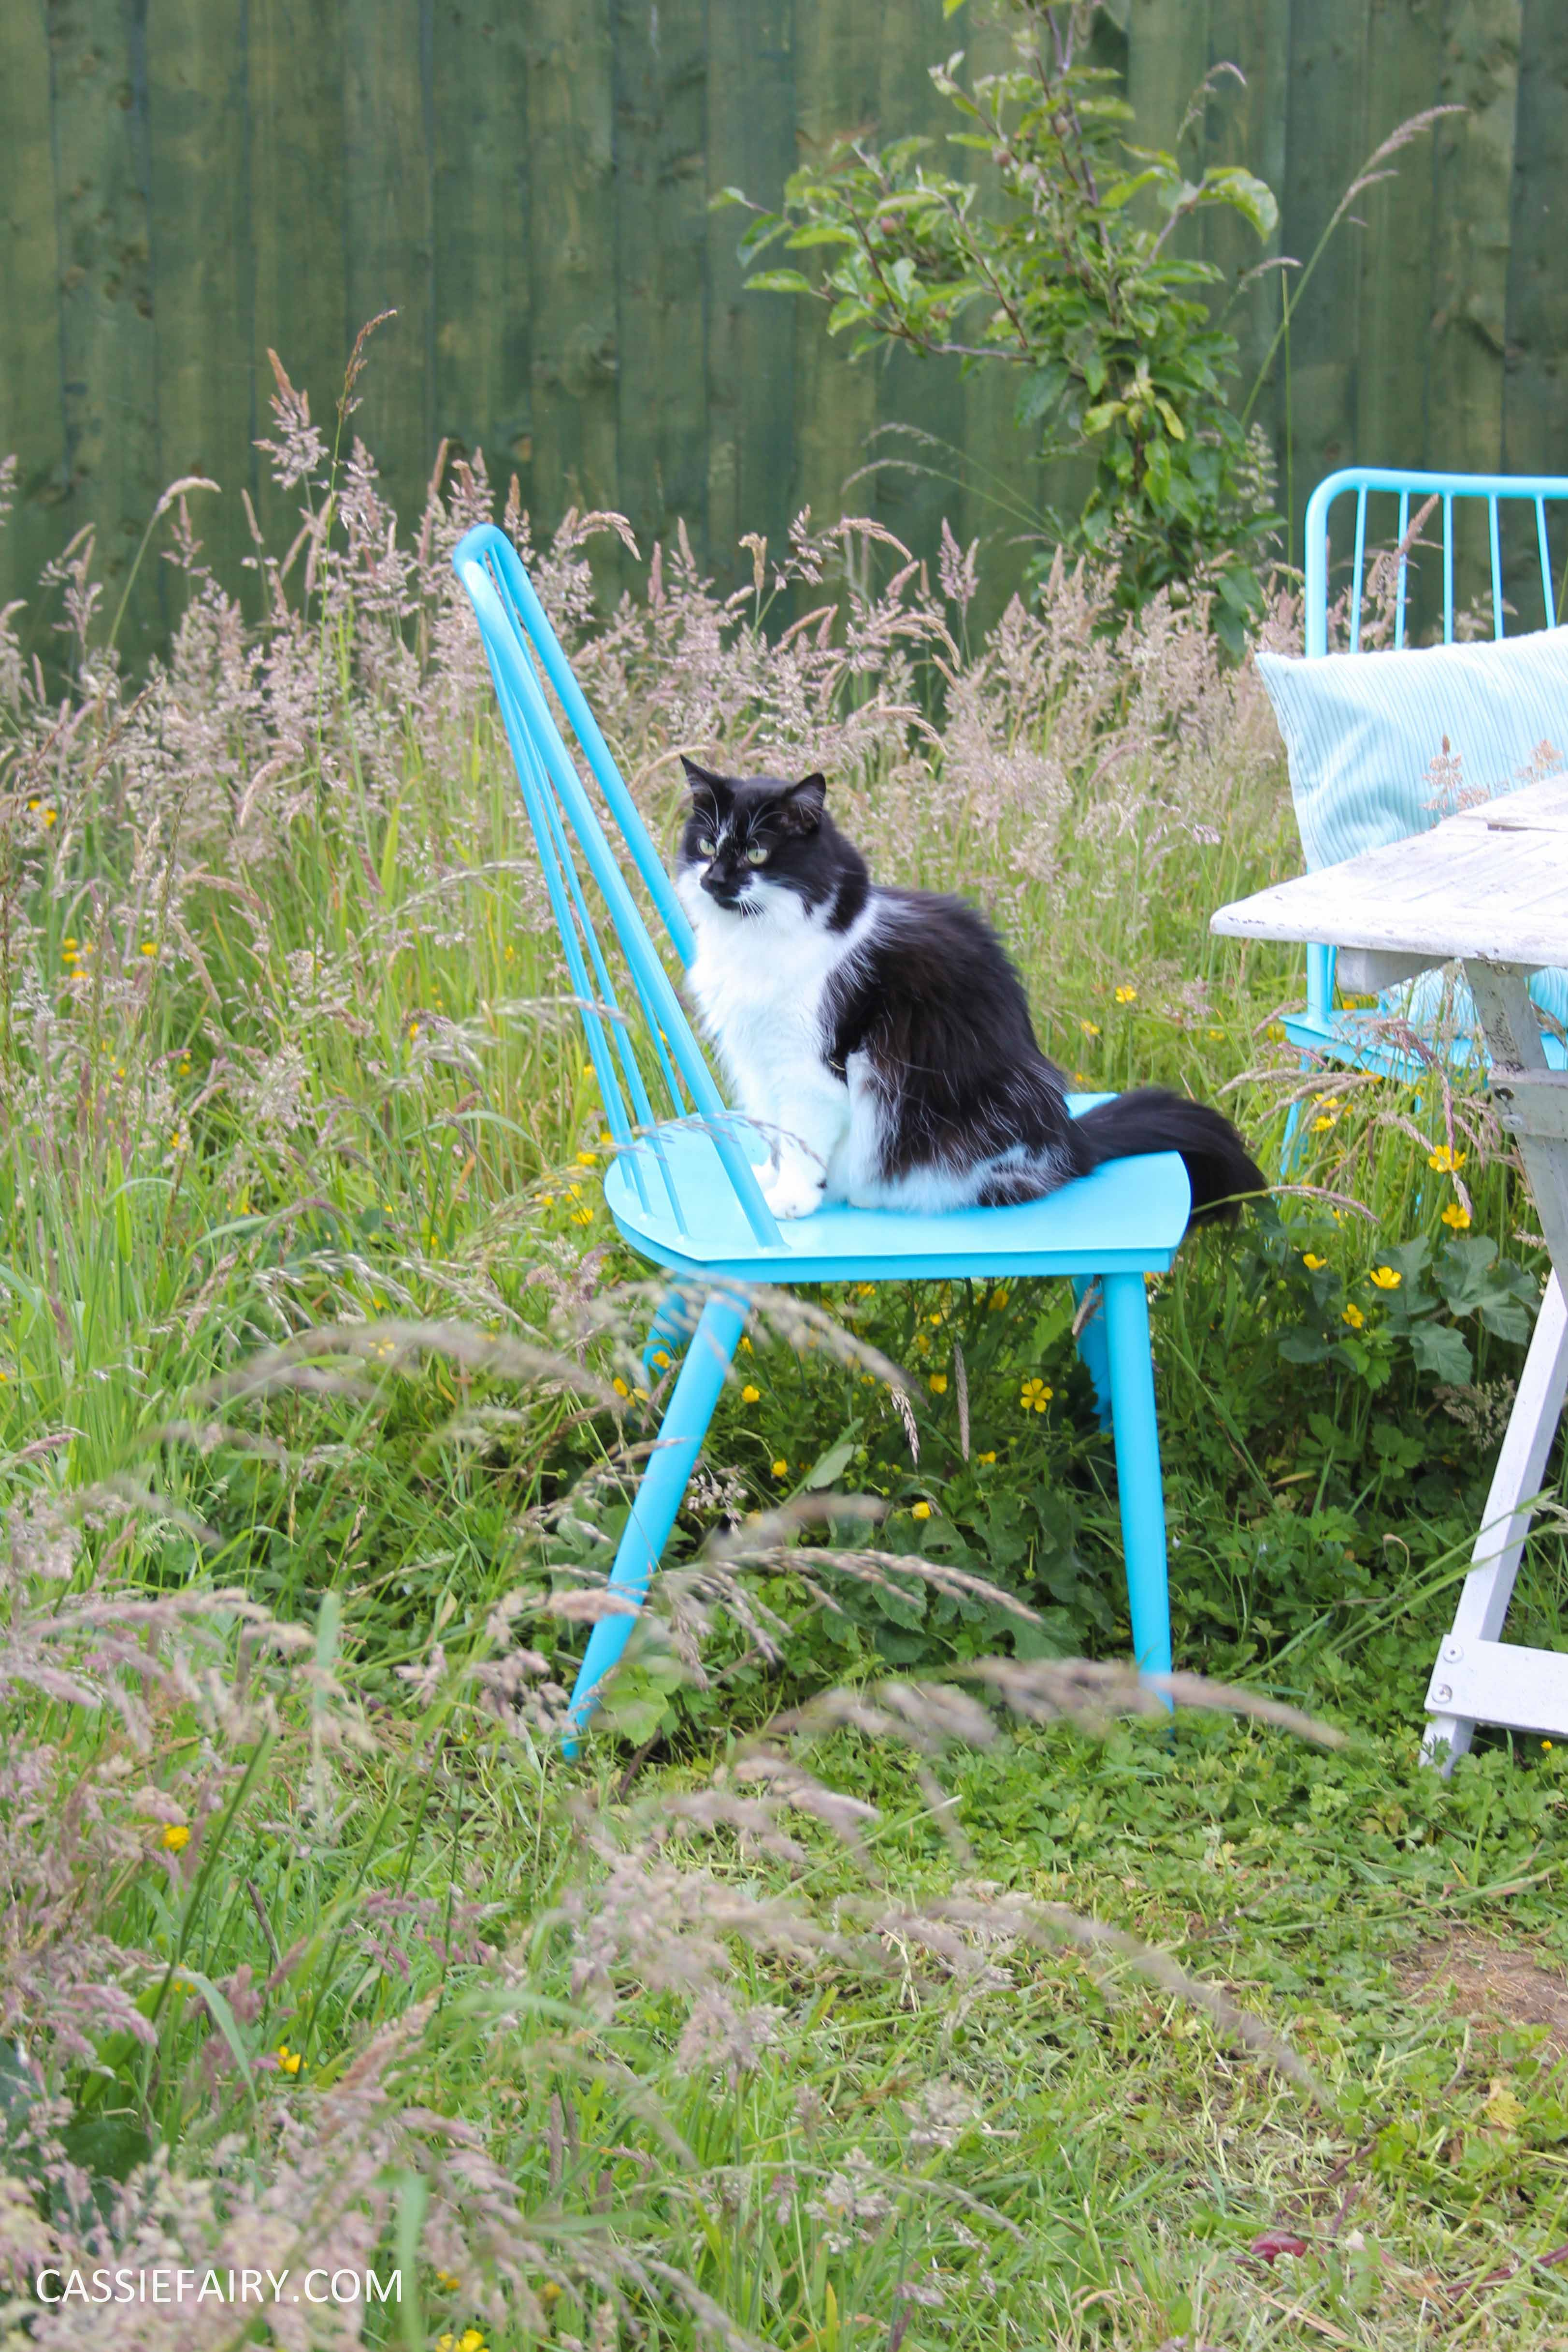 summer party - garden table and chairs in wild flower meadow-13